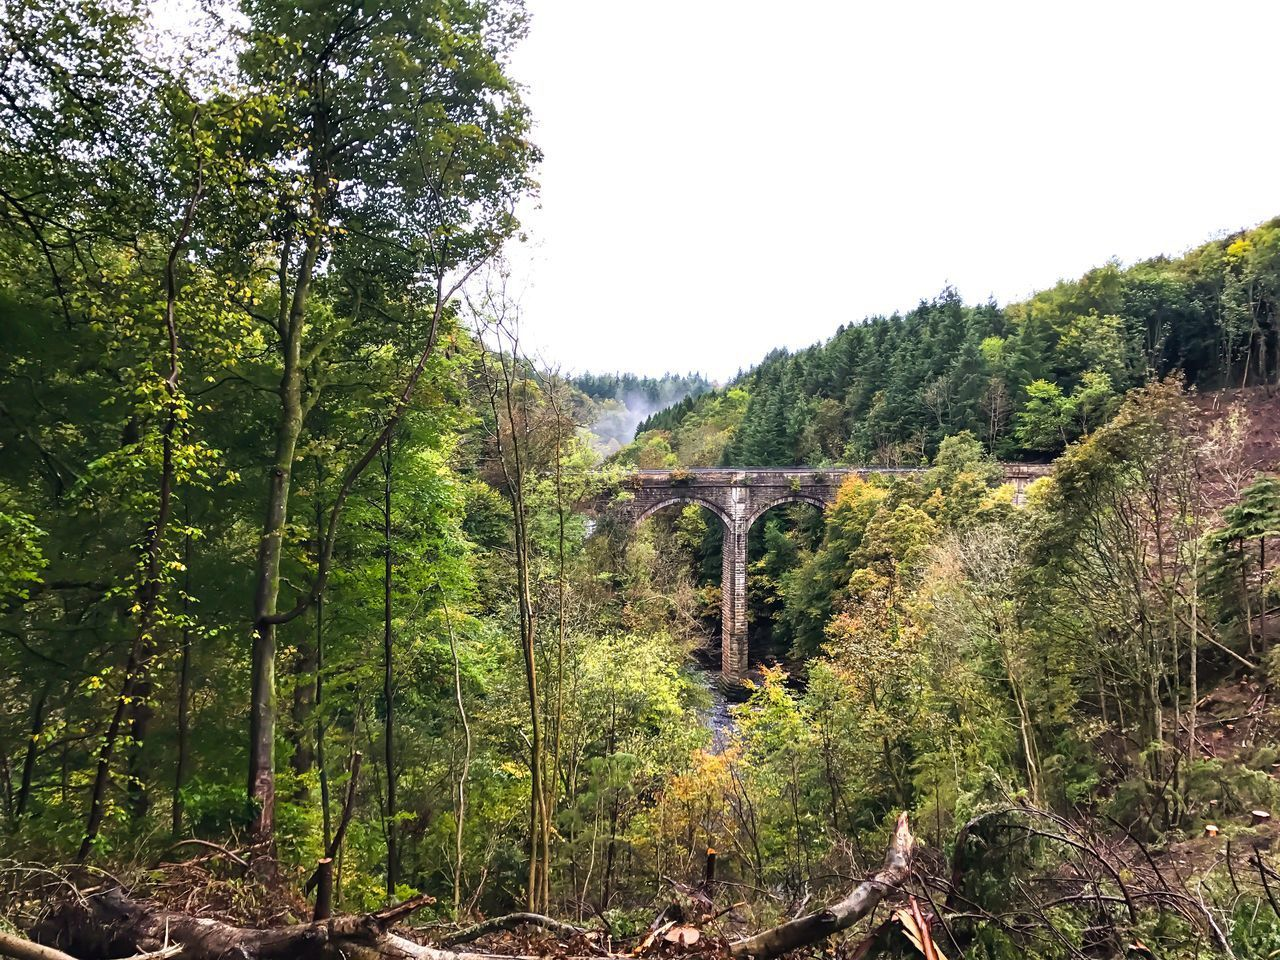 bridge - man made structure, connection, tree, transportation, arch, forest, day, no people, outdoors, growth, rail transportation, architecture, nature, built structure, sky